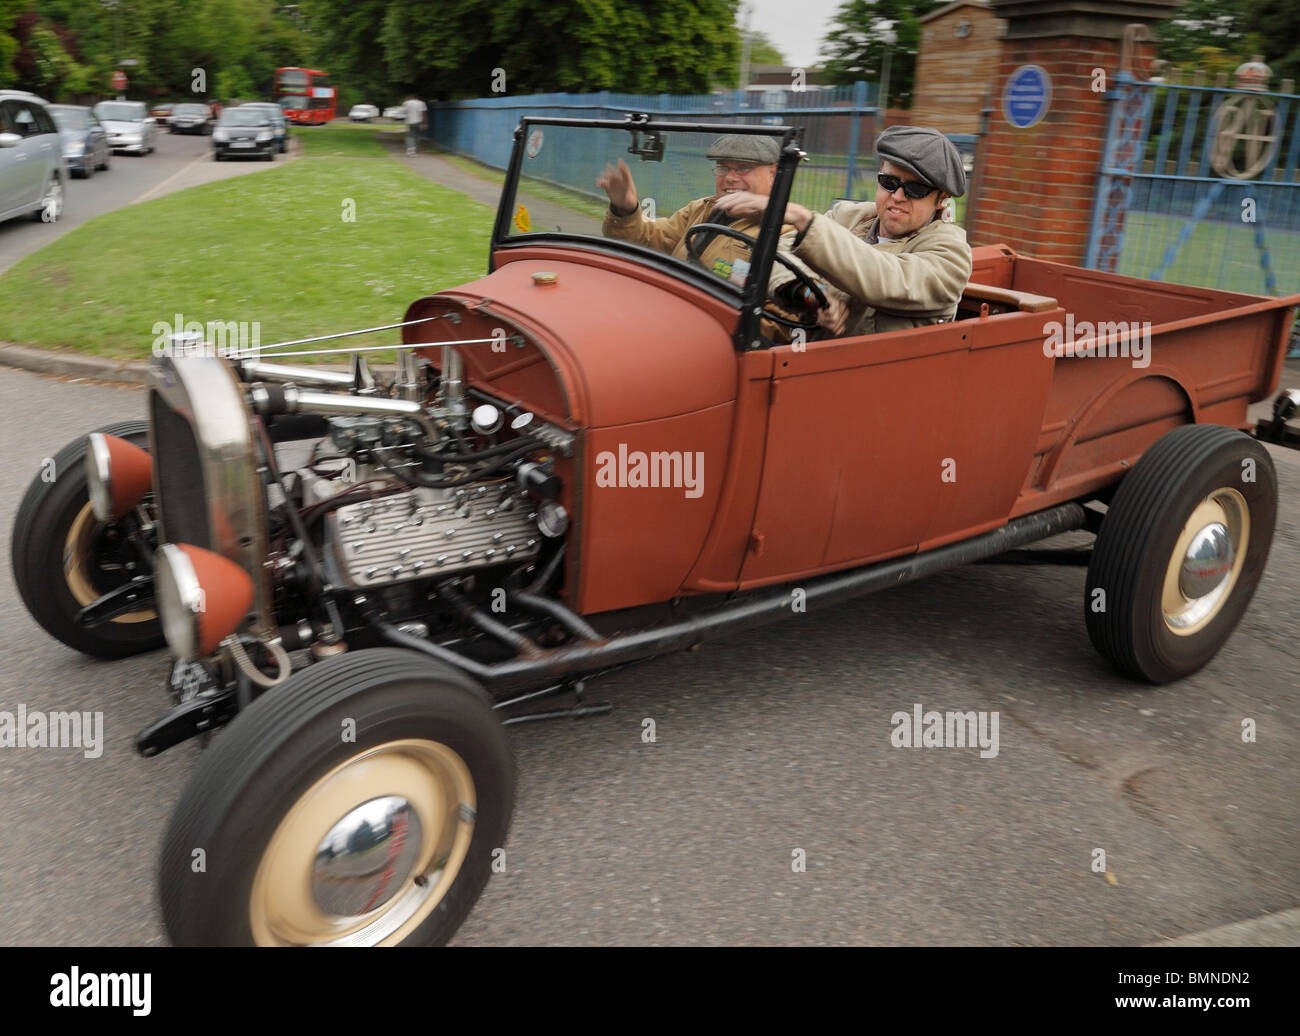 Customized pickup truck Hot Rod Stock Photo, Royalty Free Image ...